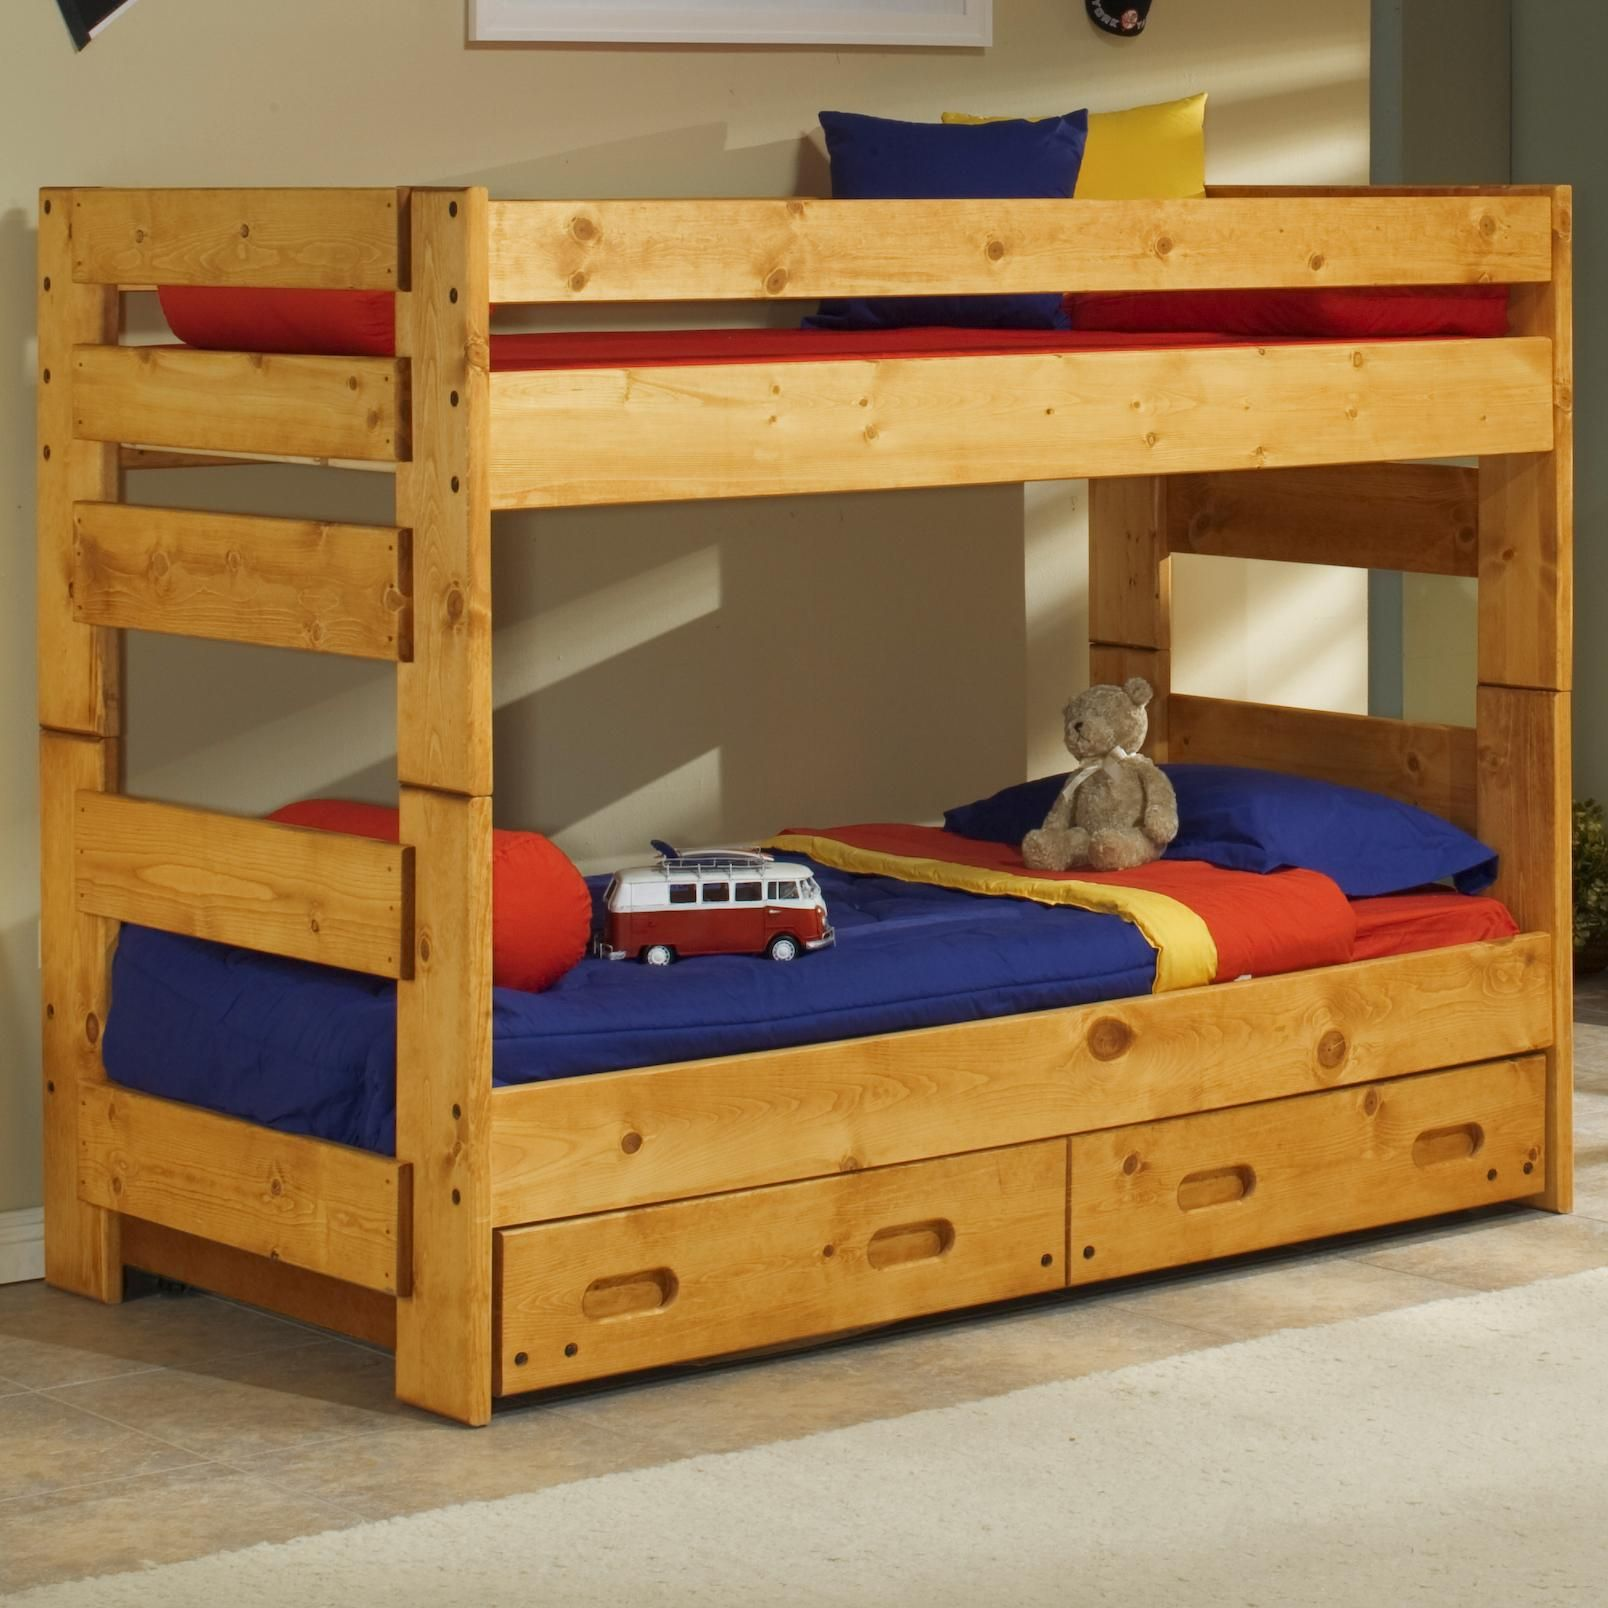 Loft captains bed twin  Bunkhouse TwinTwin Wrangler Bunk Bed by Trendwood  Youth  Pinterest